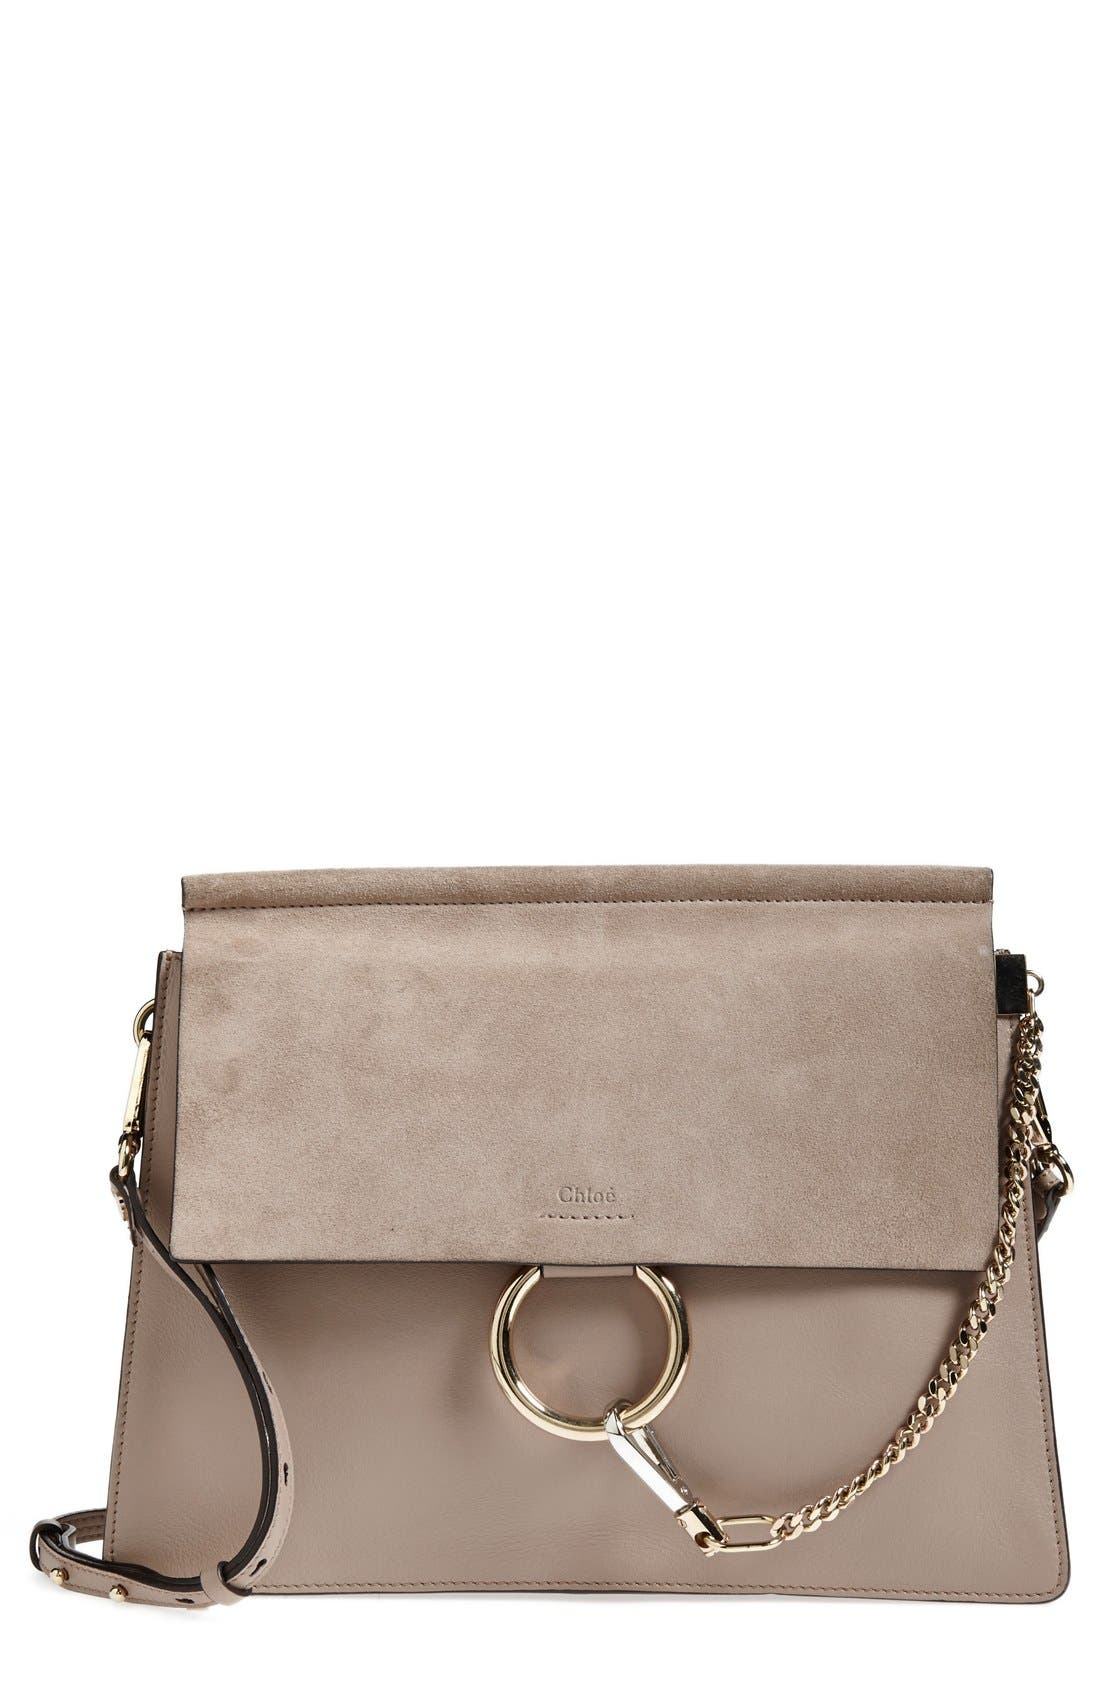 'Faye' Leather & Suede Shoulder Bag,                             Main thumbnail 1, color,                             MOTTY GREY